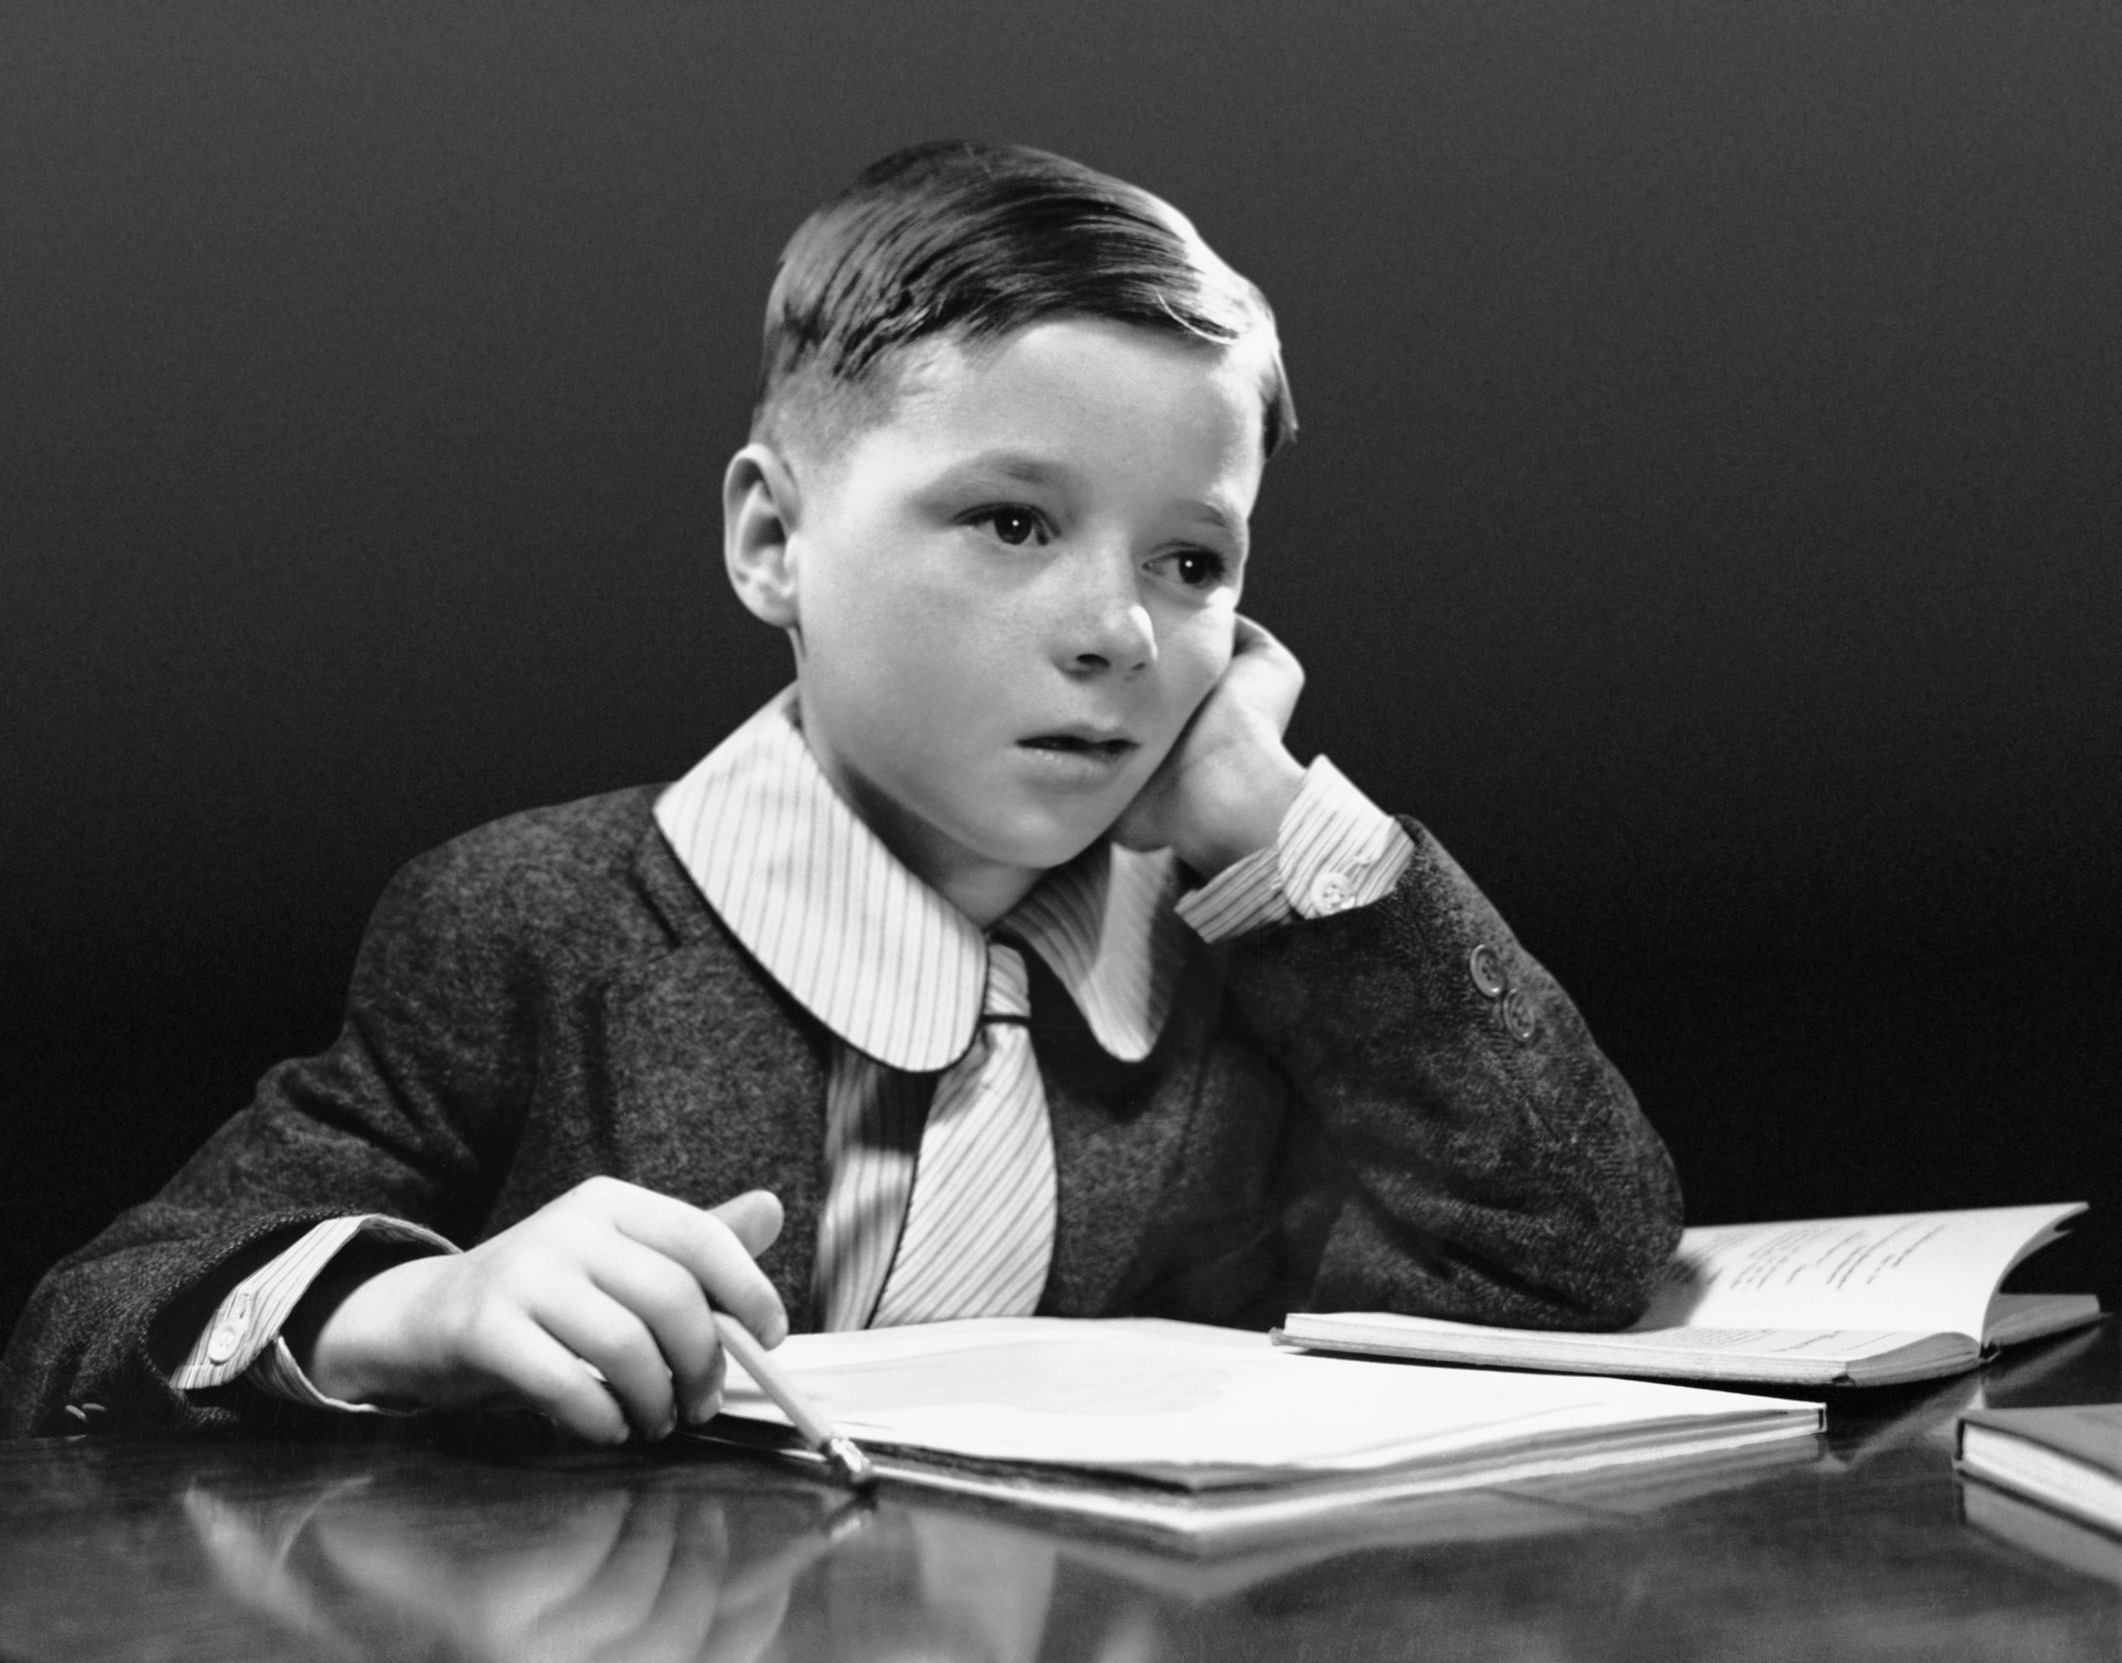 Boy sitting at desk with book.